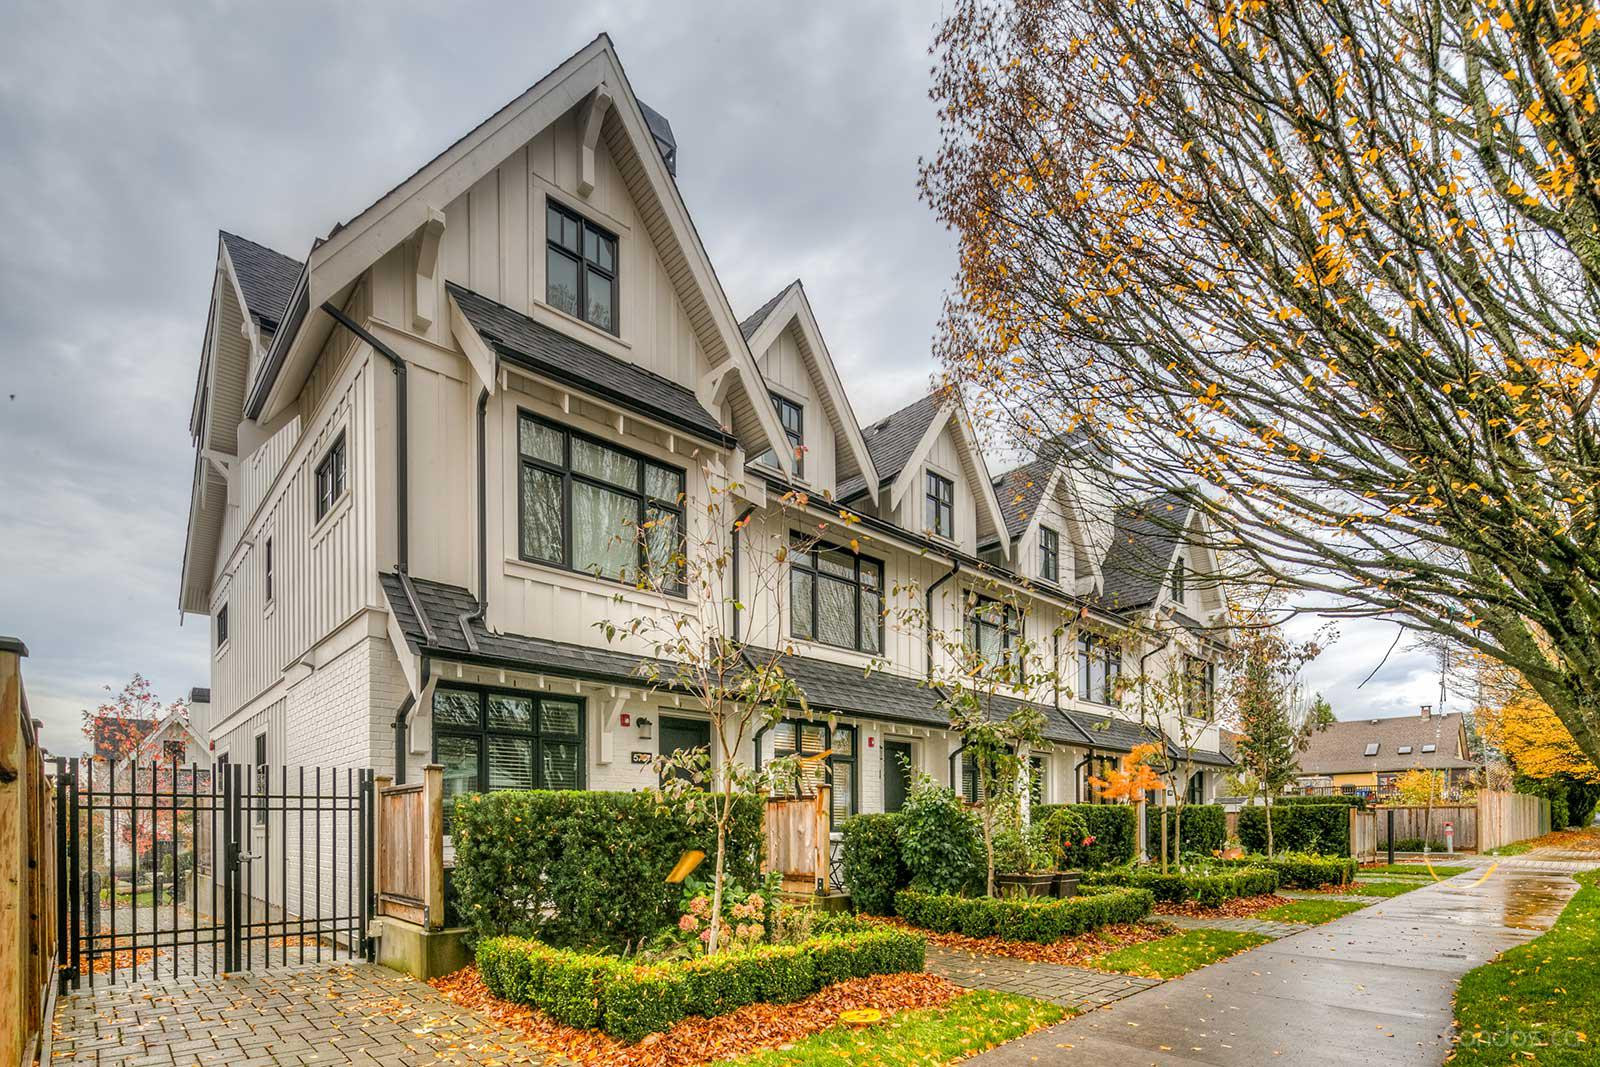 The Saint George at 5731 St George St, Vancouver 0